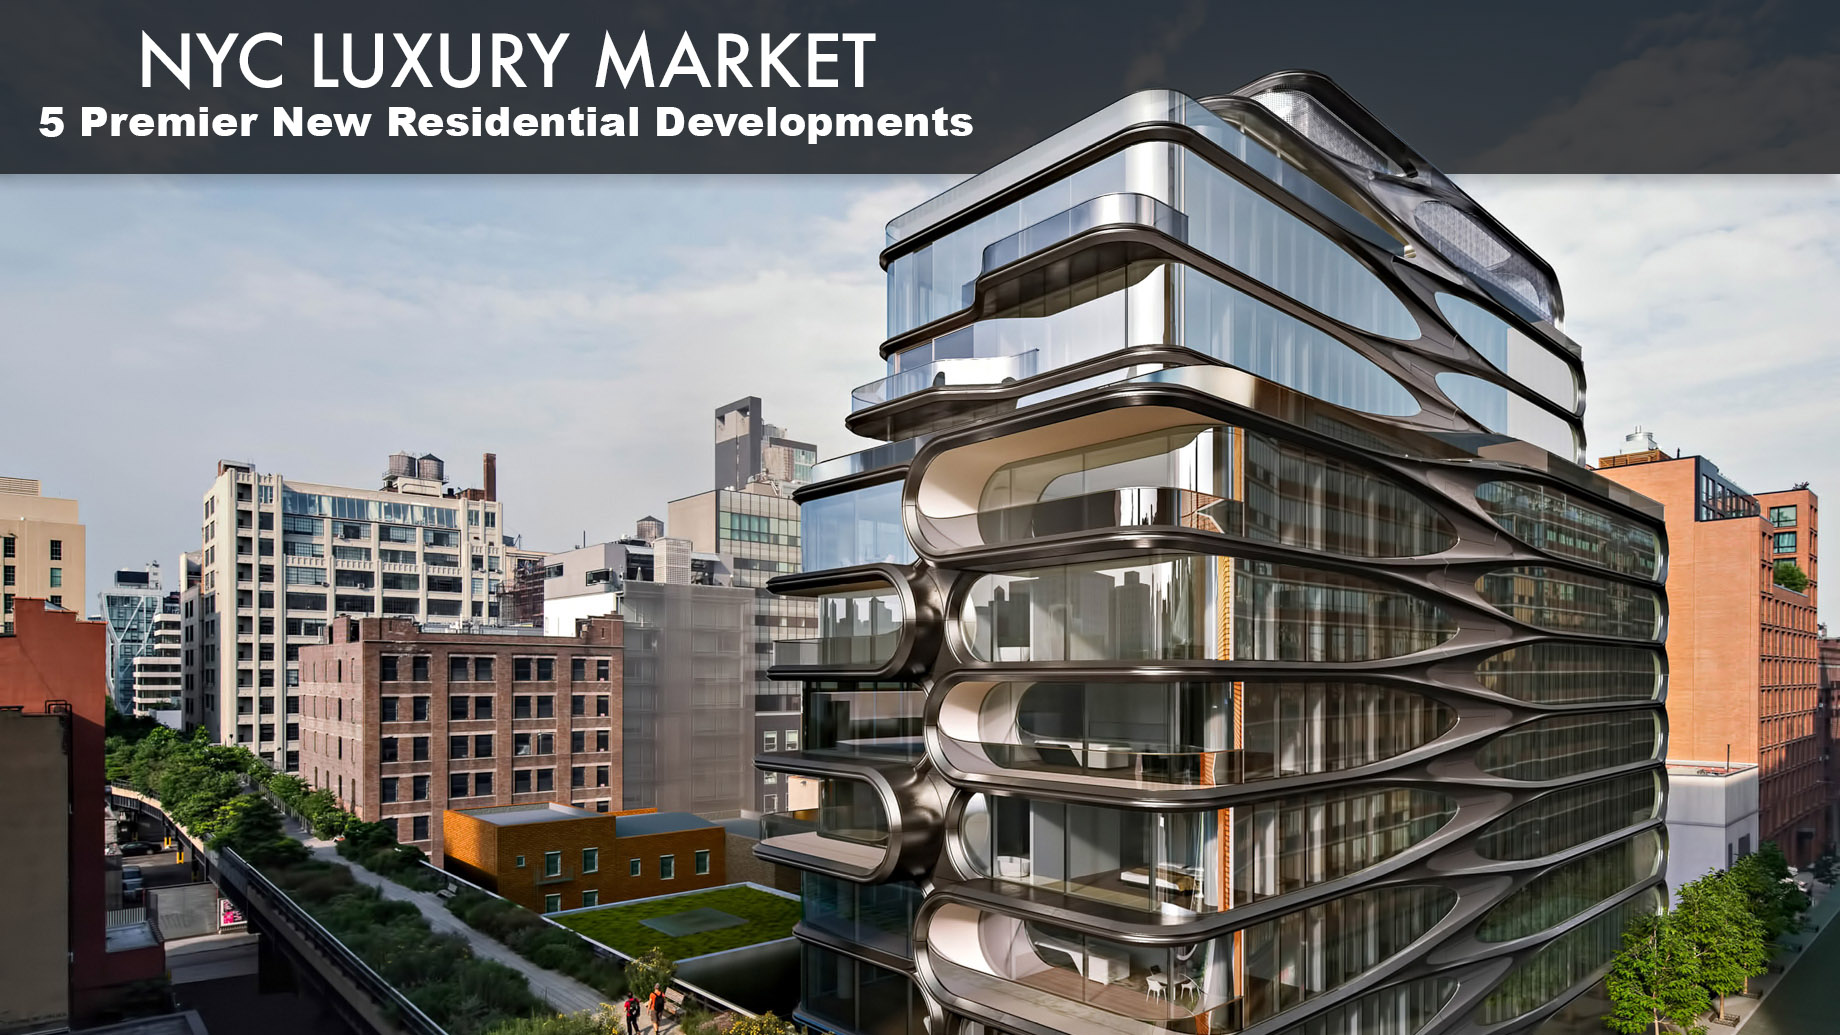 New York City Luxury Market in 2018 - 5 Premier New Residential Developments